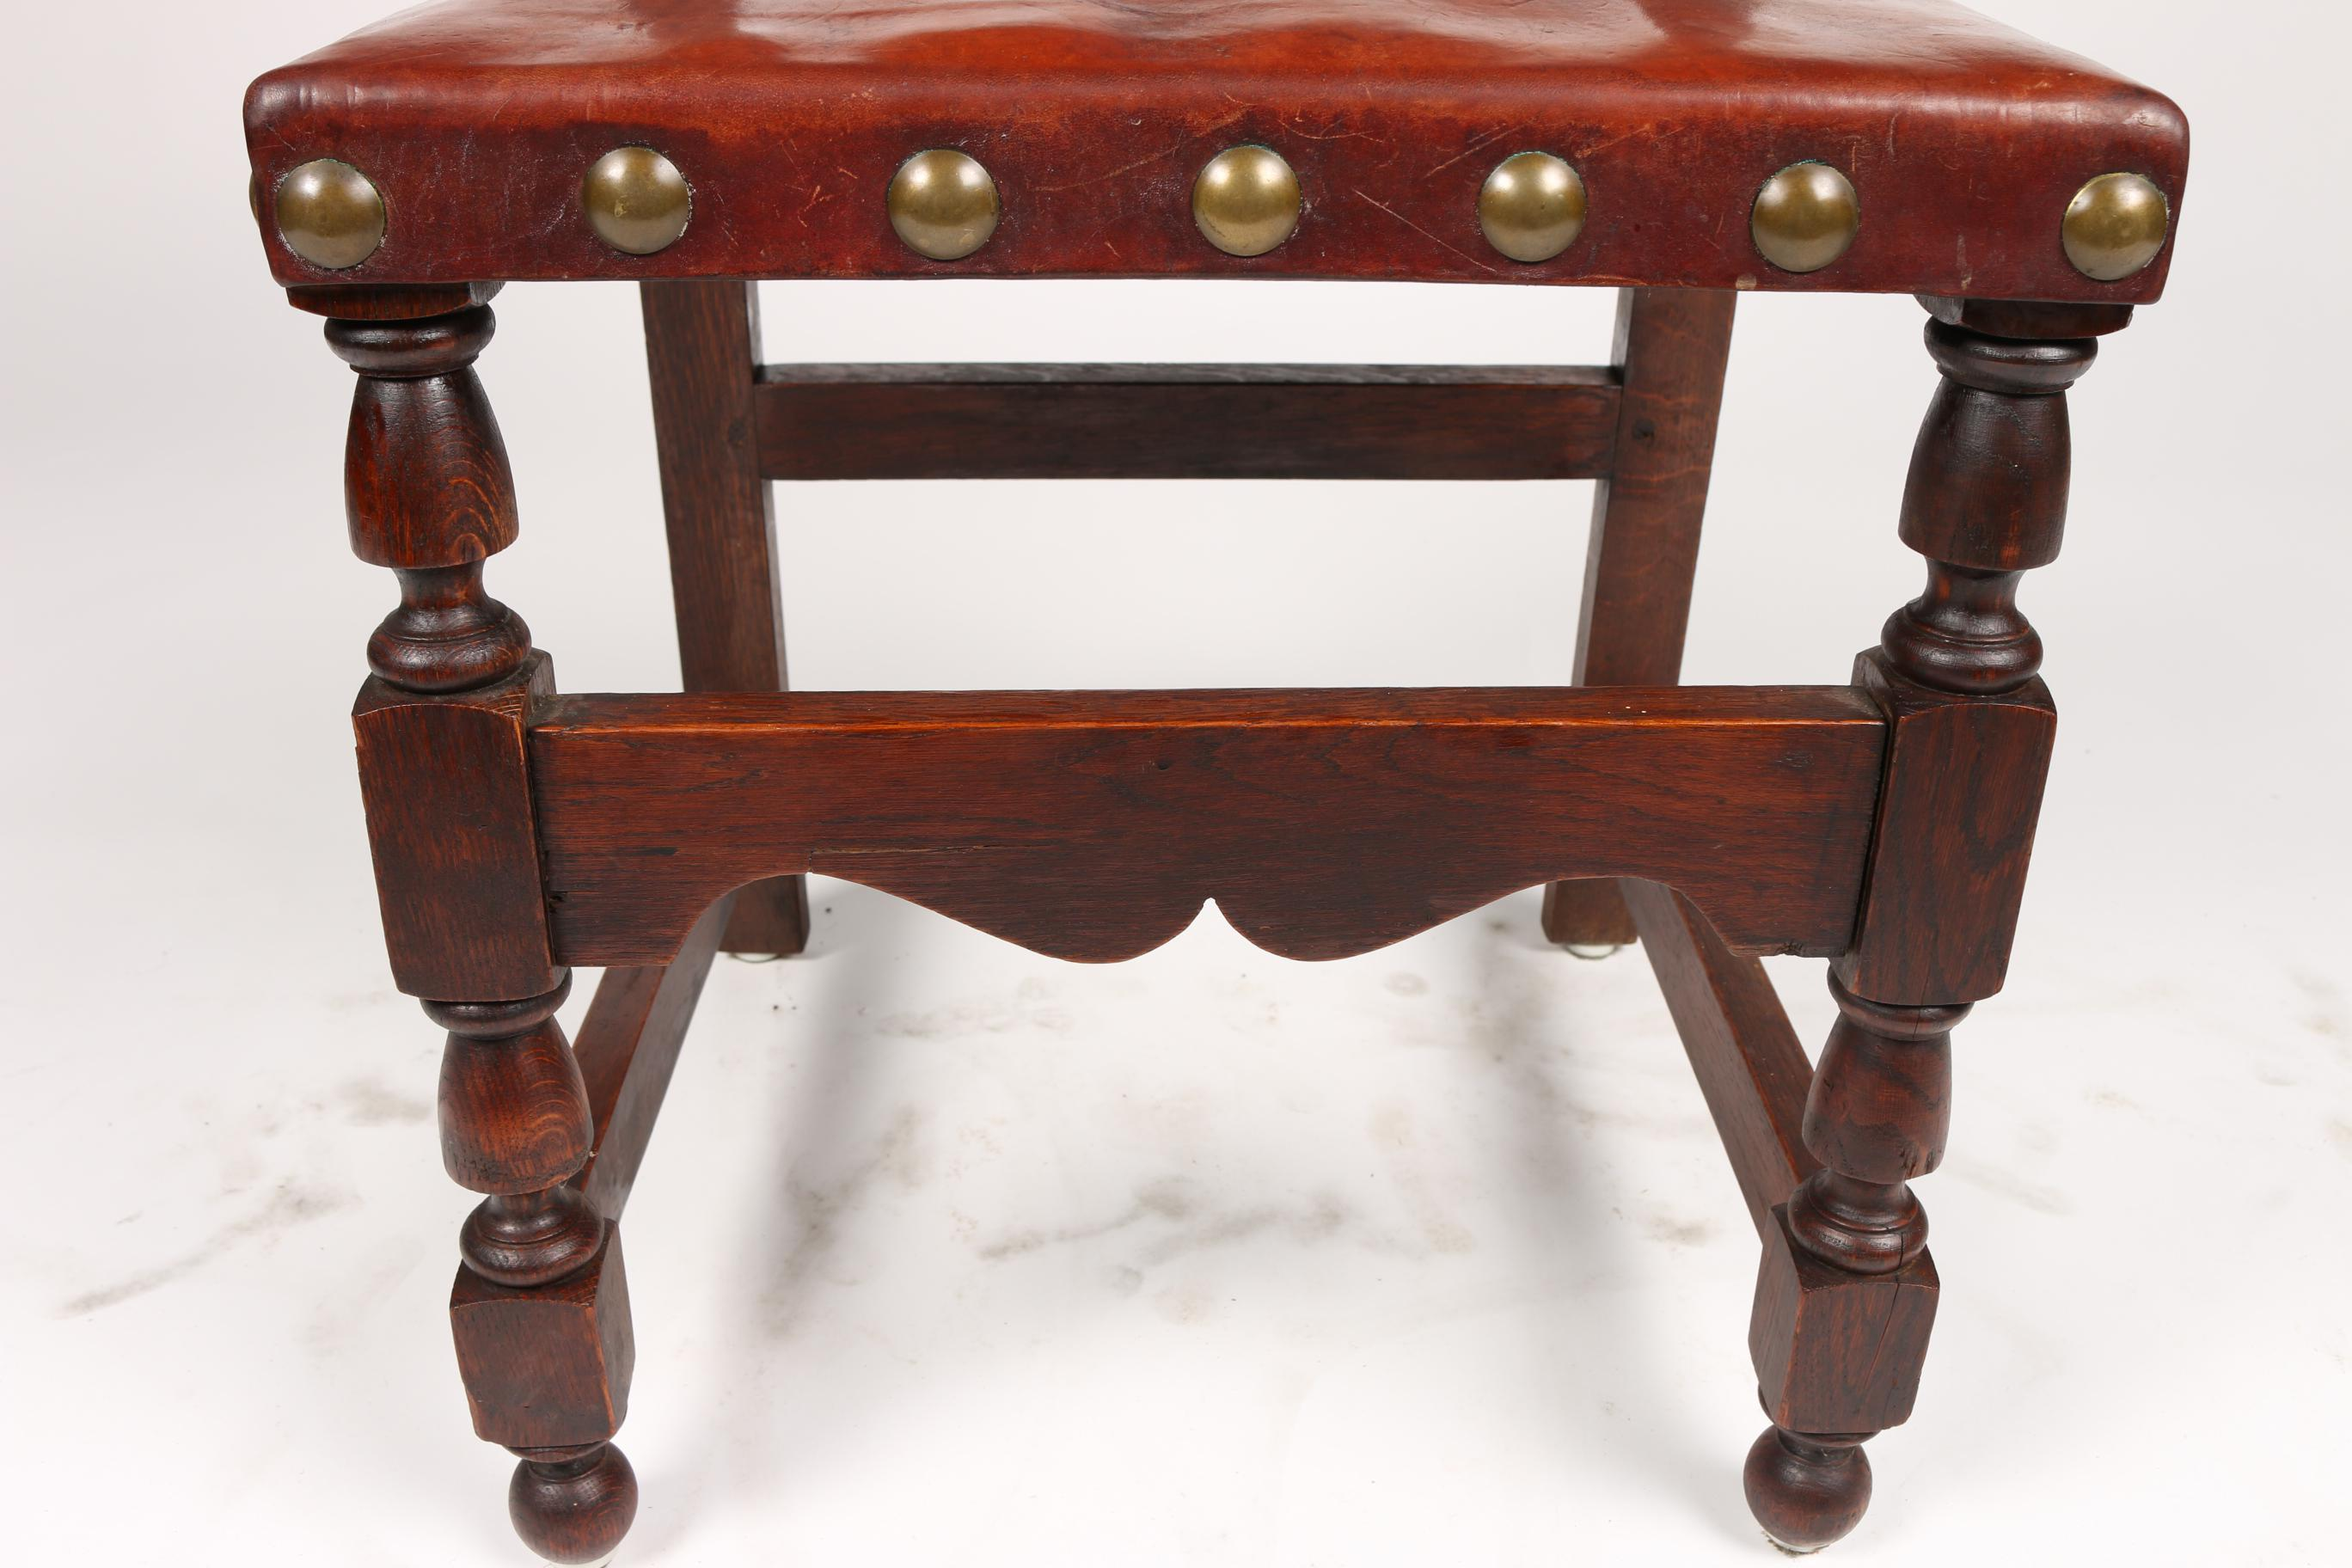 C.1900 Antique Spanish Chairs   A Pair   Image 8 Of 9